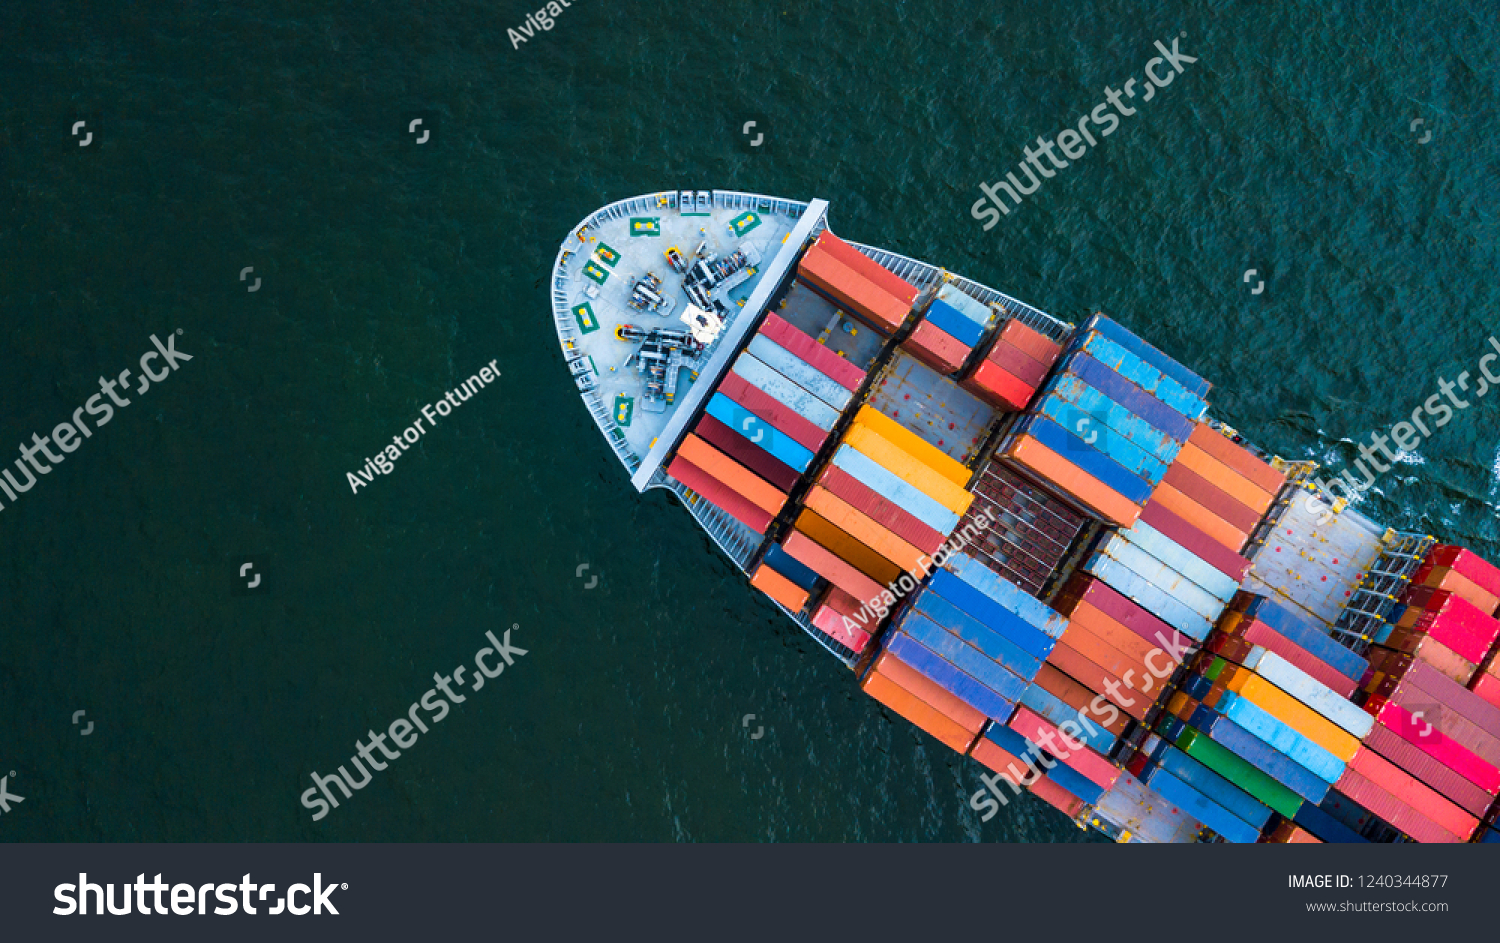 Container ship, Logistic business freight shipping import export international by container ship vessel in the open sea, Aerial top view container cargo freight shipment. #1240344877